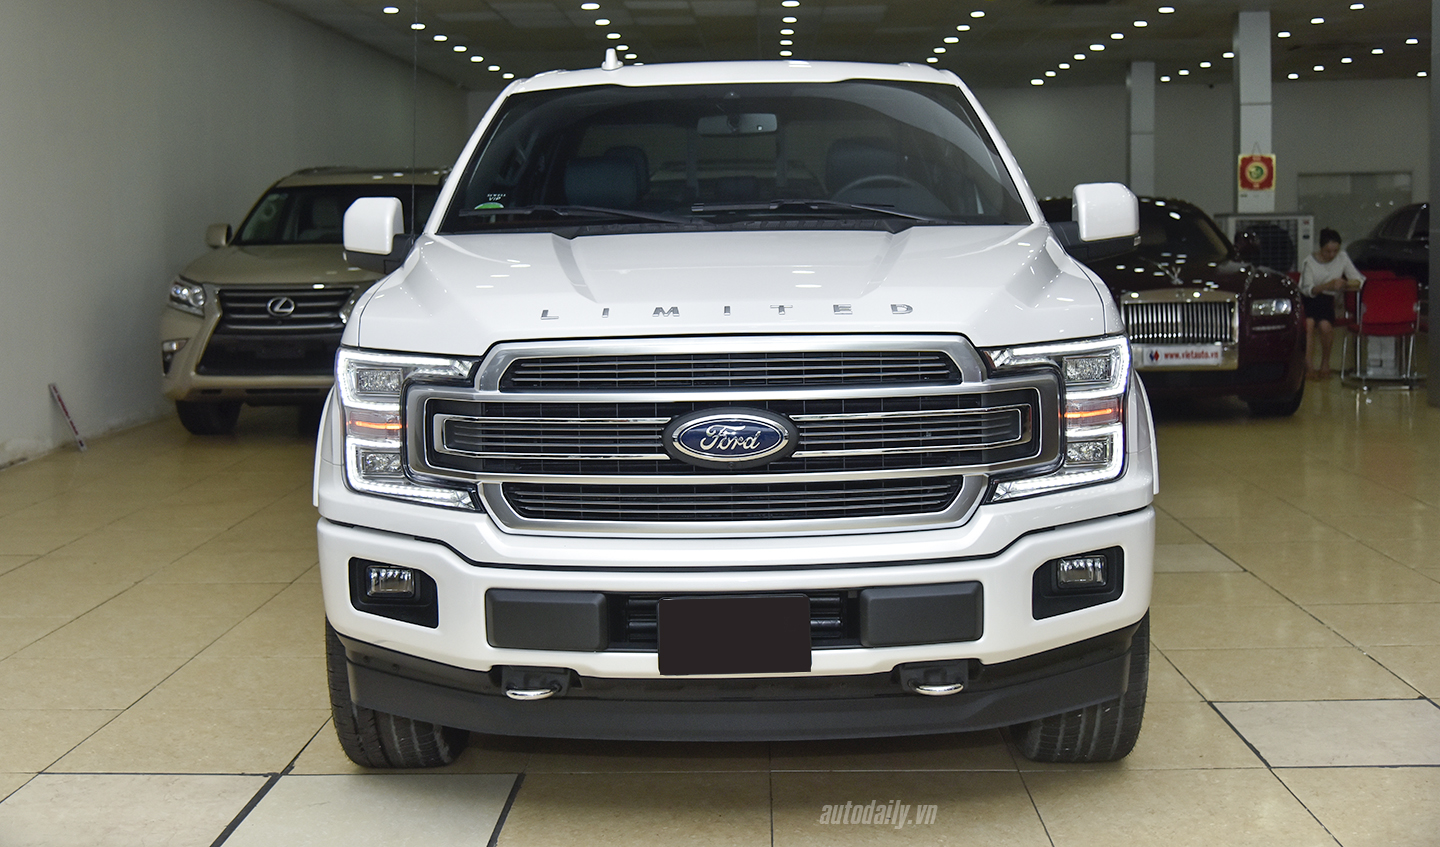 ford-f-150-limited-2018-dsc7262-copy.jpg